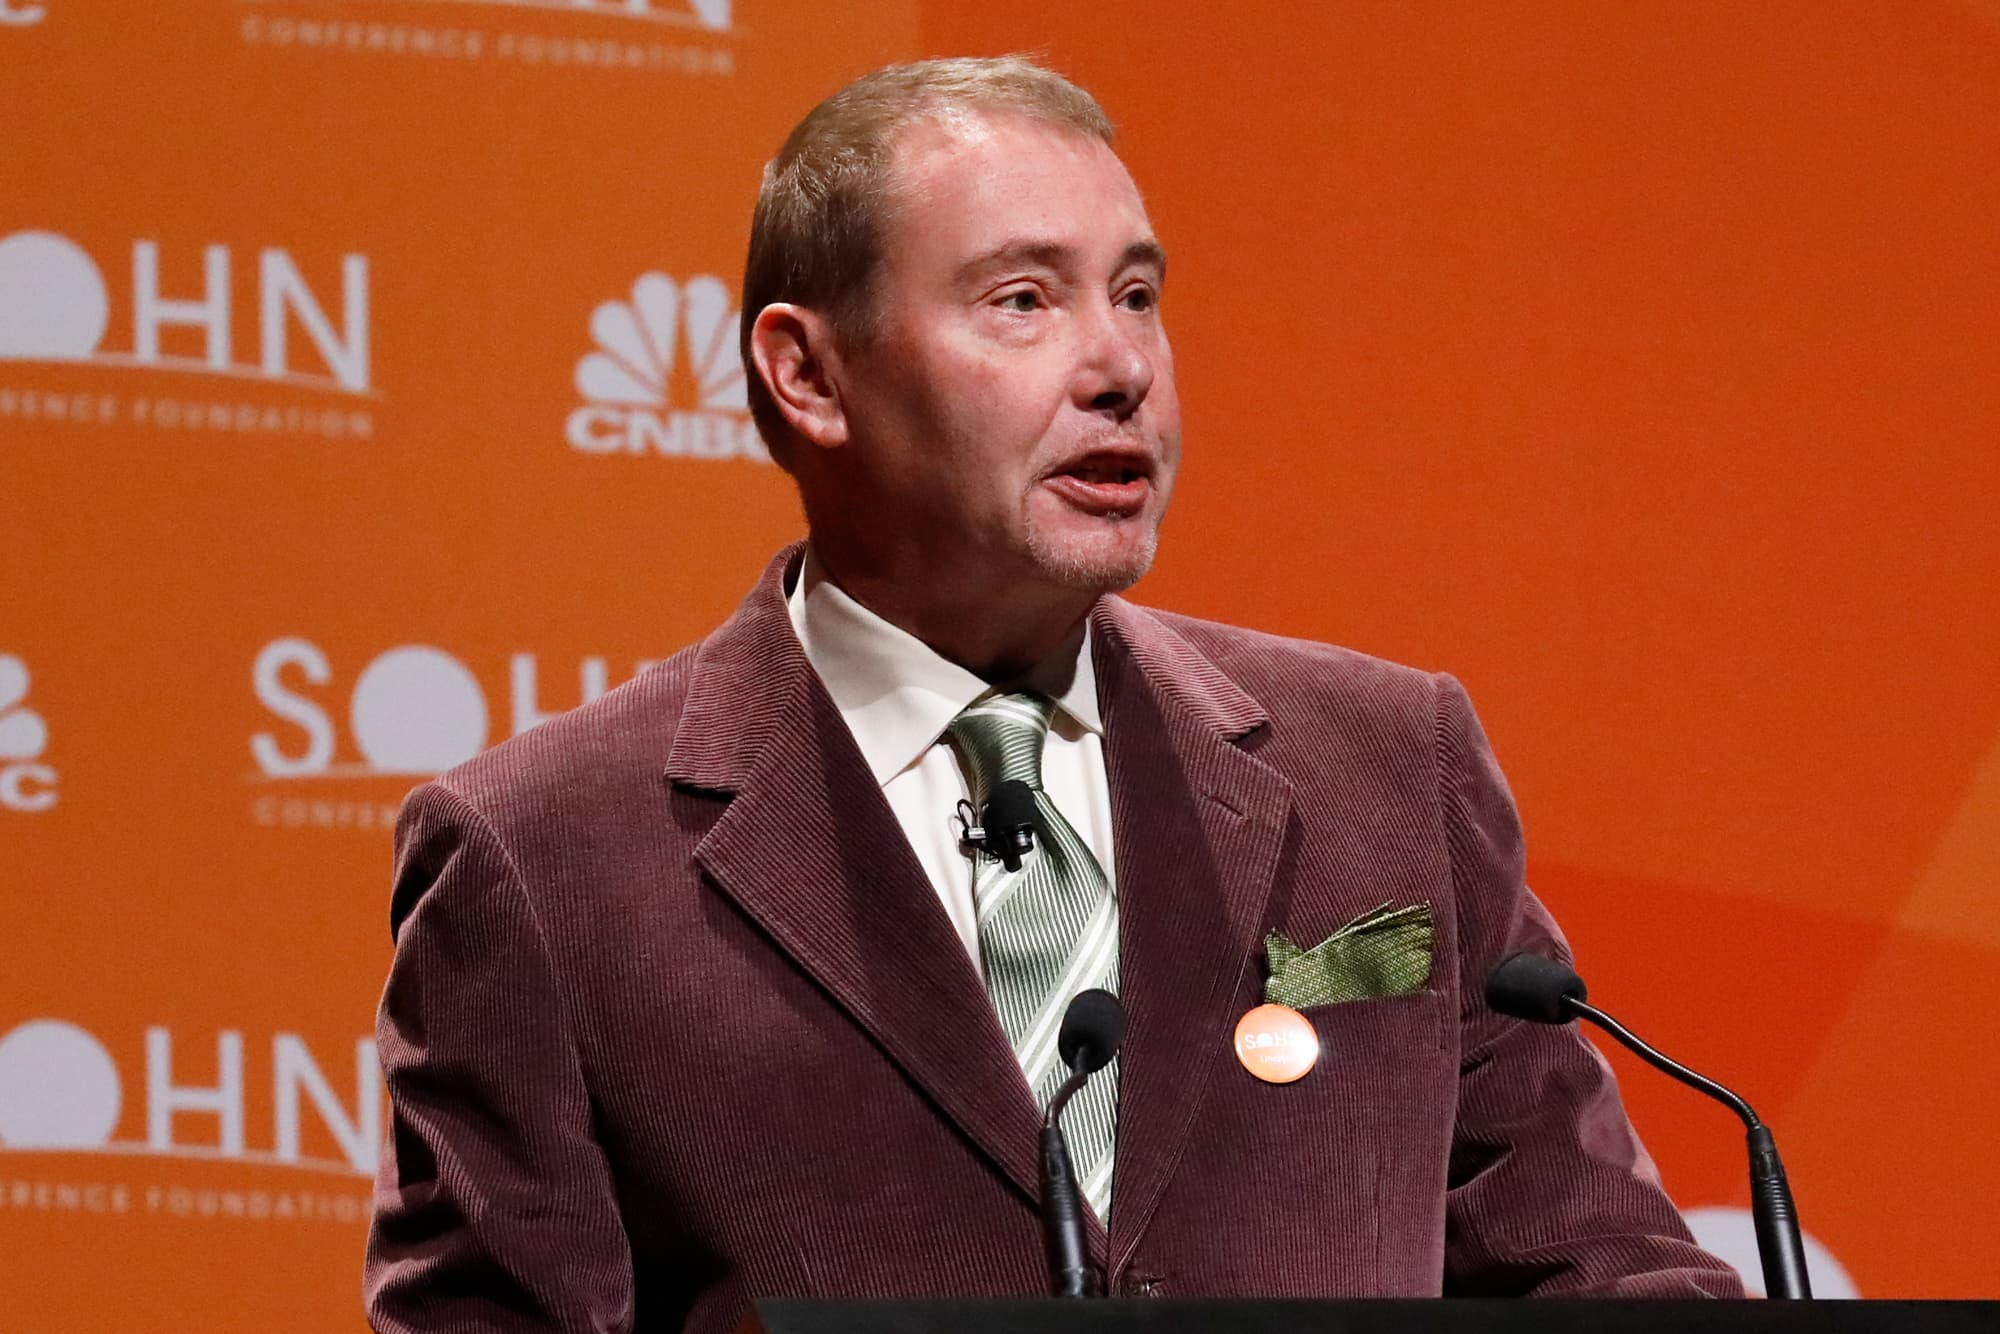 Jeff Gundlach says investors can get rich off interest rate volatility - CNBC